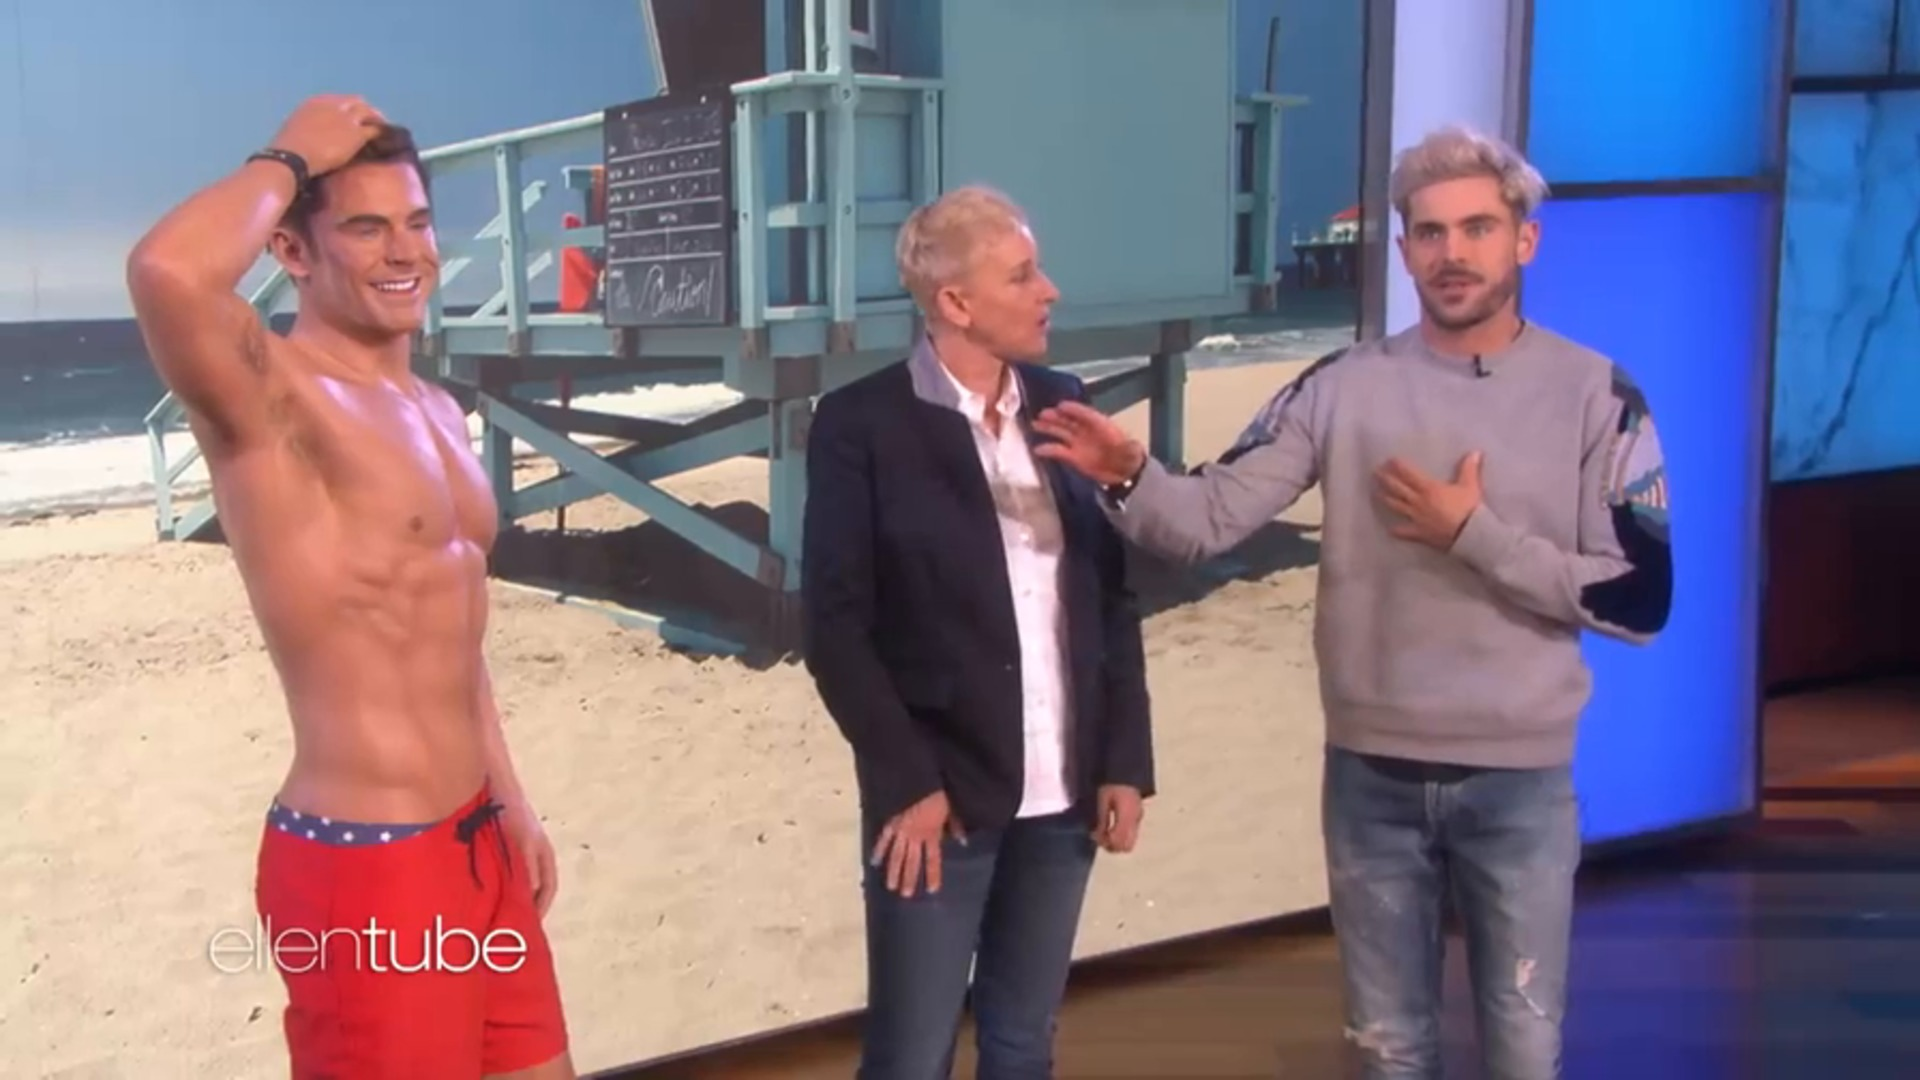 Watch Zac Efron Compares His Abs To His Wax Figure S On Ellen